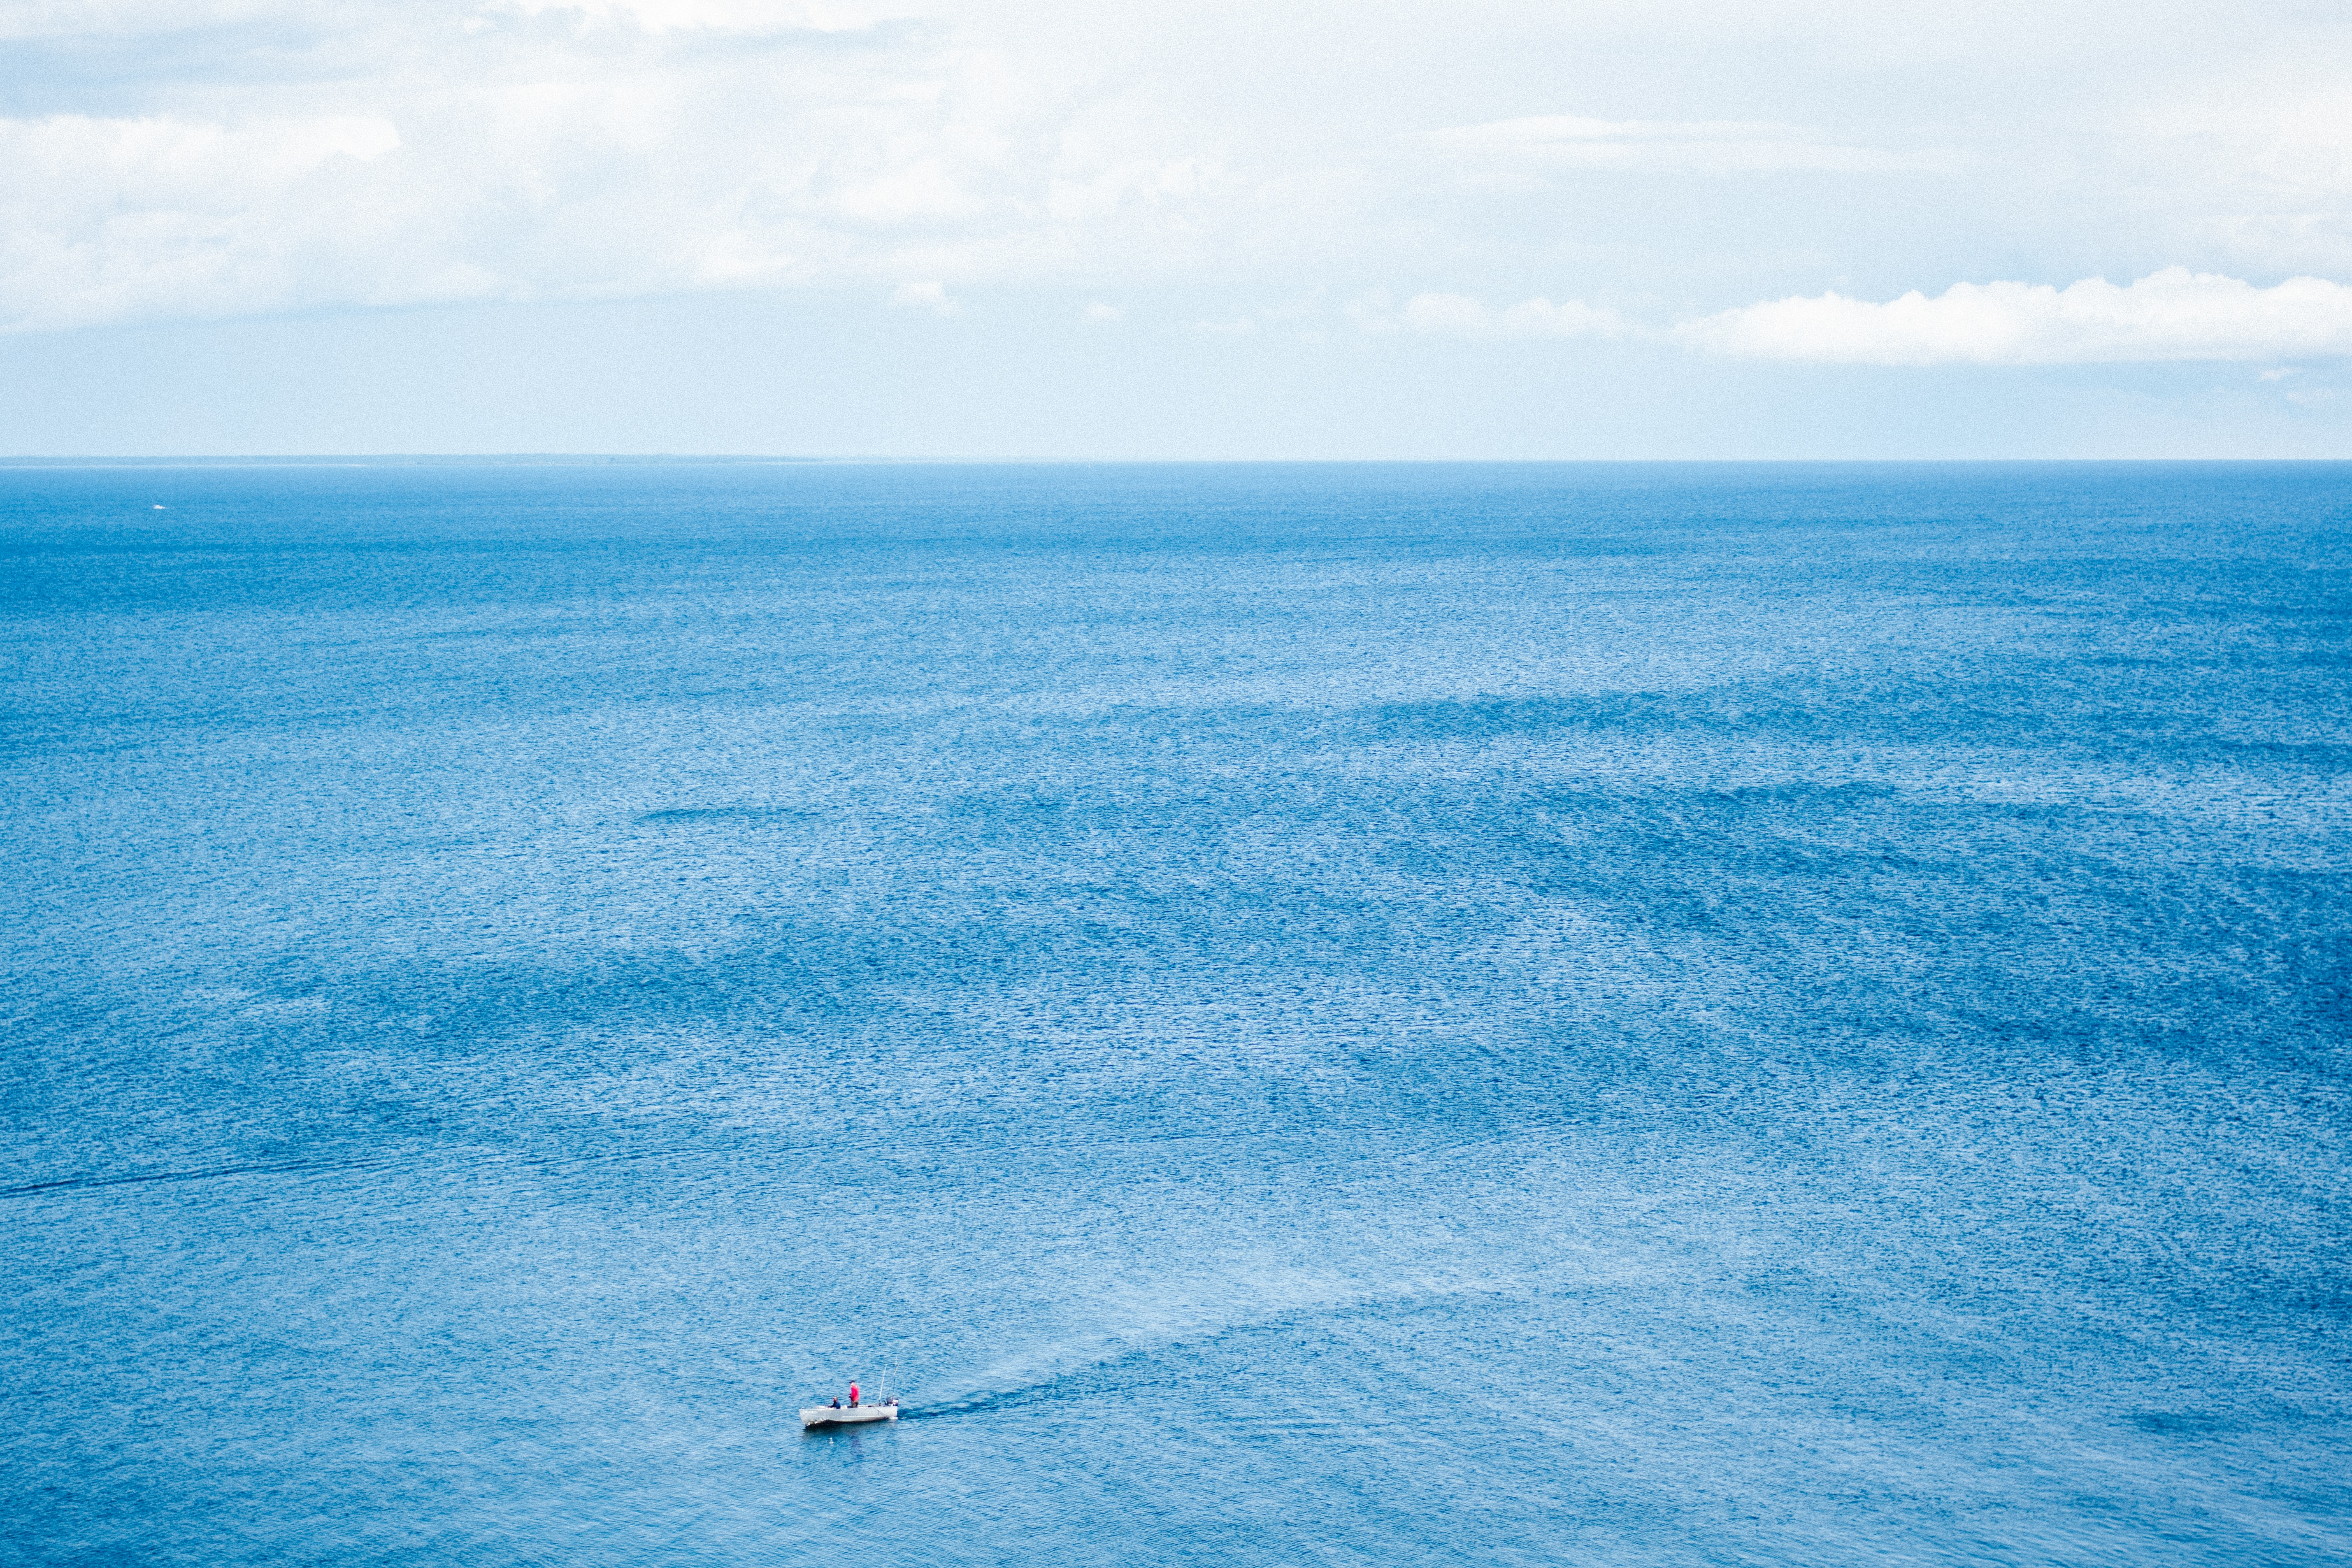 aerial photo of motor boat surrounded of body of water during daytime